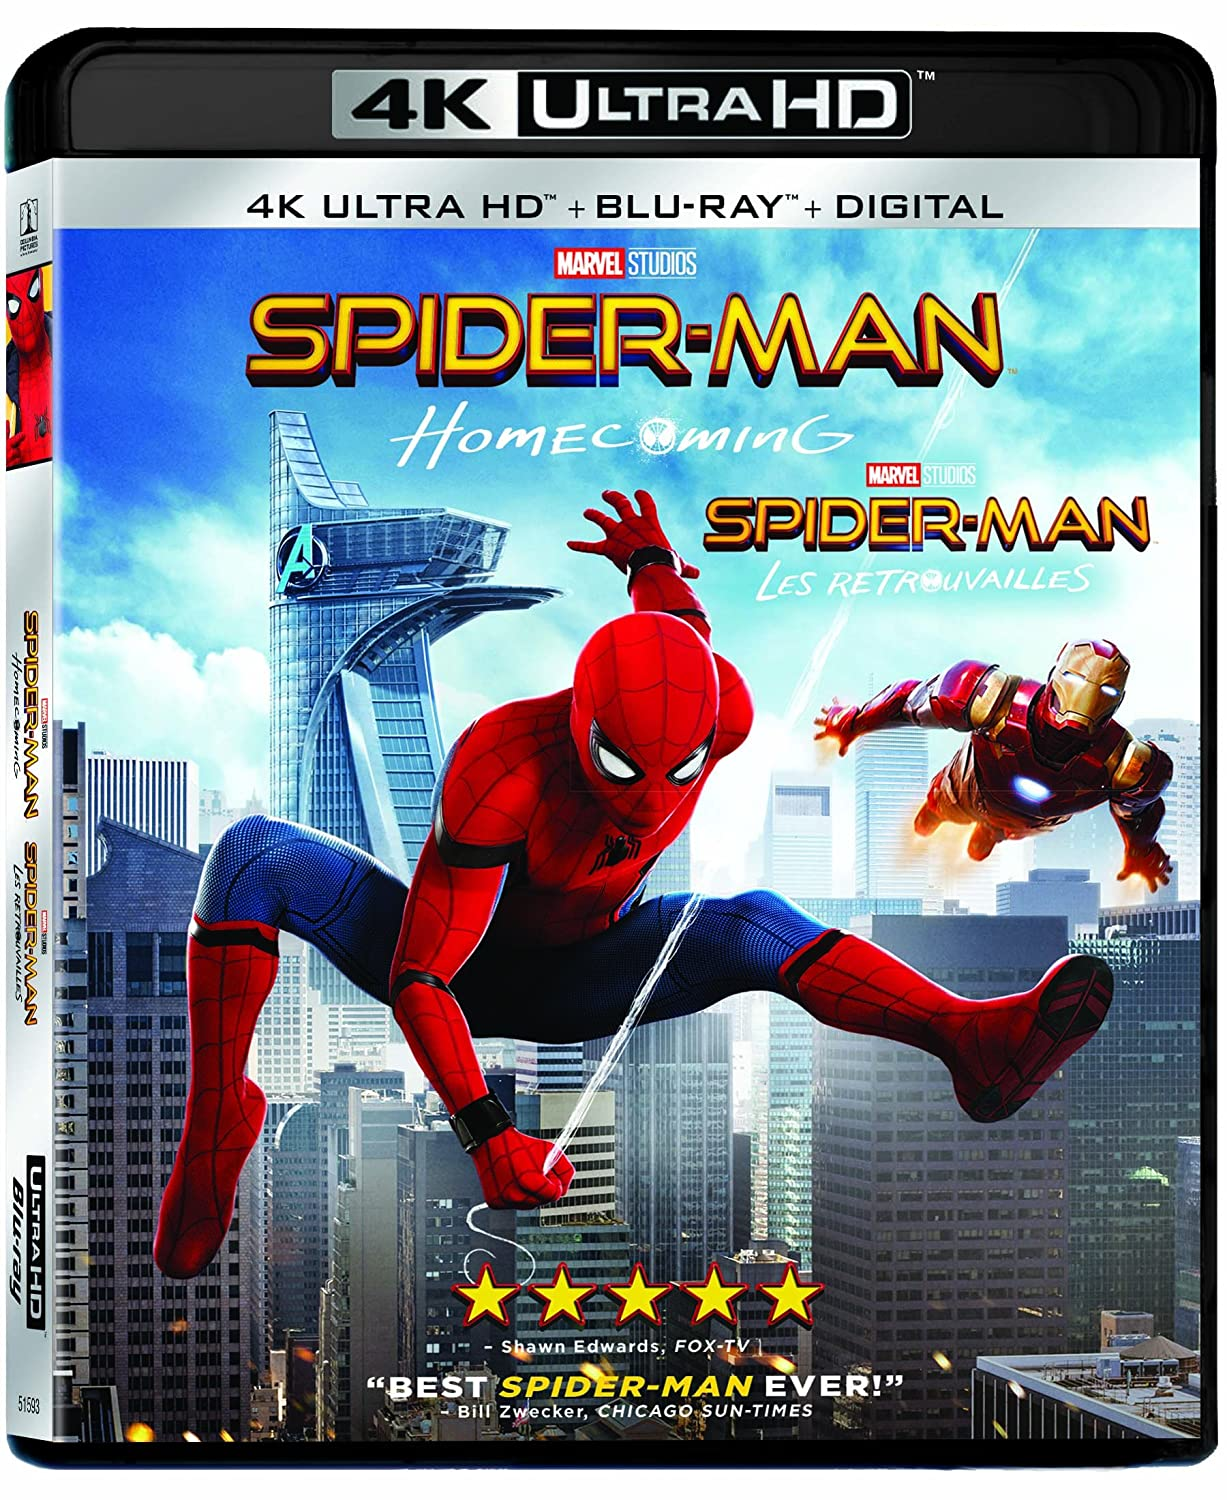 Spider-Man Homecoming (2 Discs) - 4K UHD [Blu-ray] (Bilingual) Tom Holland Robert Downey Jr. Michael Keaton Jon Watts